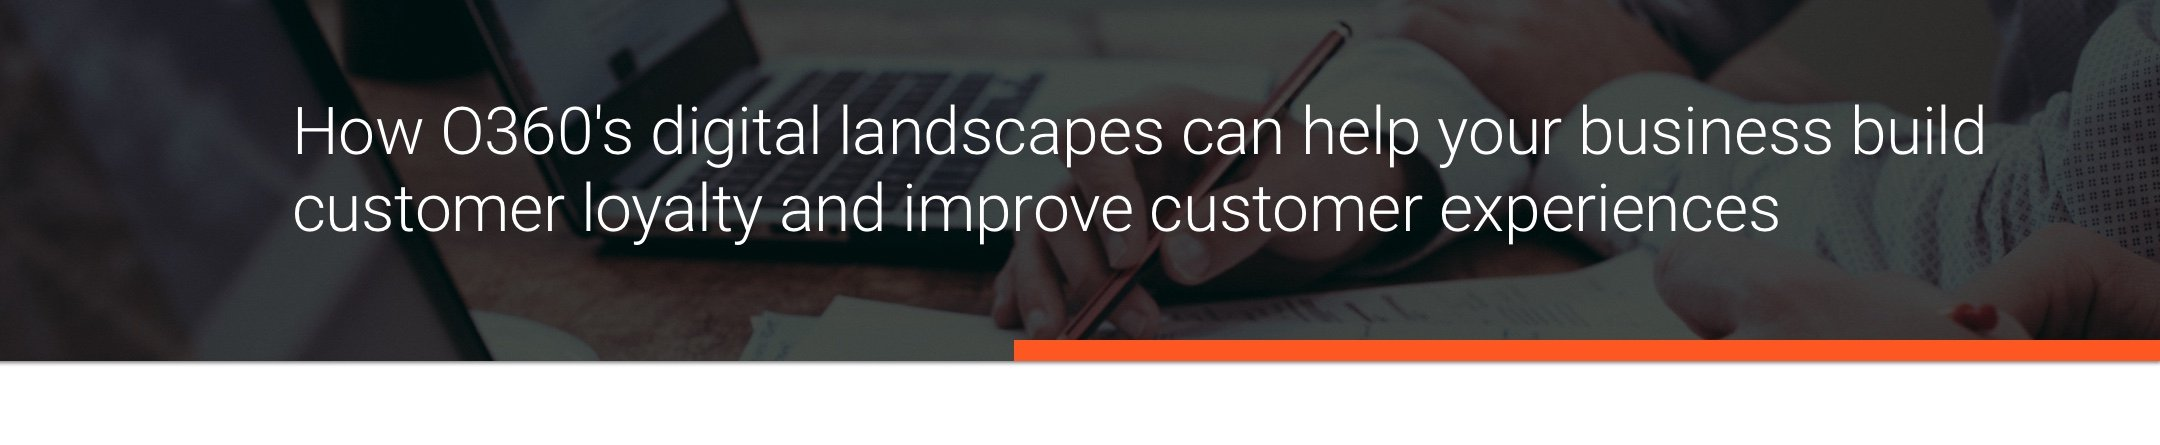 How O360's digital landscapes can help your business build customer loyalty and improve customer experiences